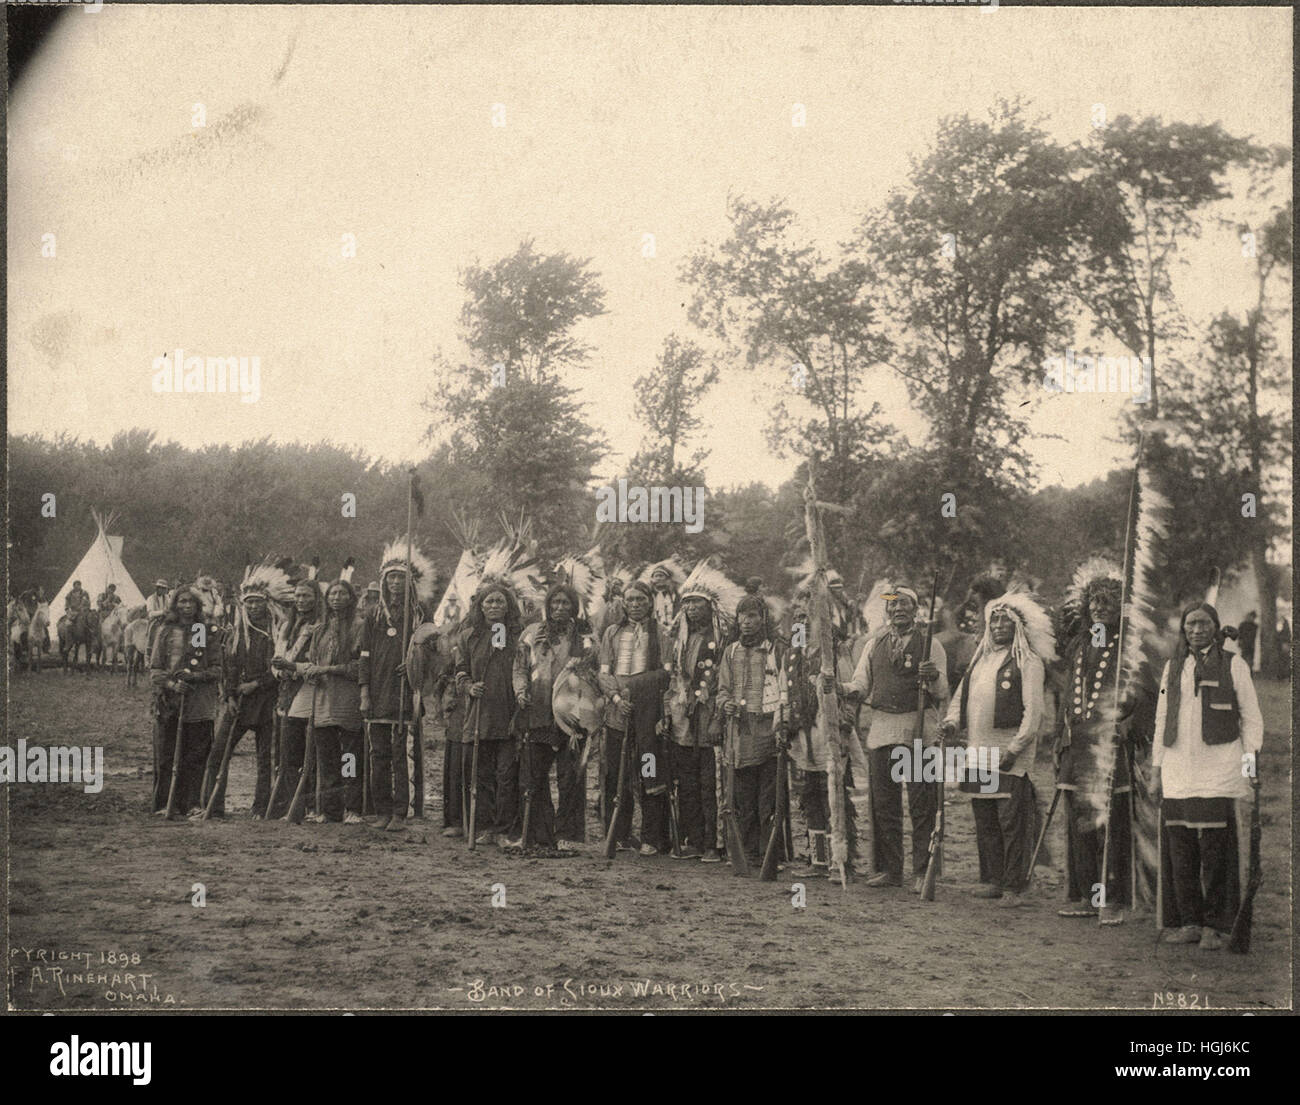 Band of Sioux Warriors   - 1898 Indian Congress - Photo : Frank A. Rinehart - Stock Image